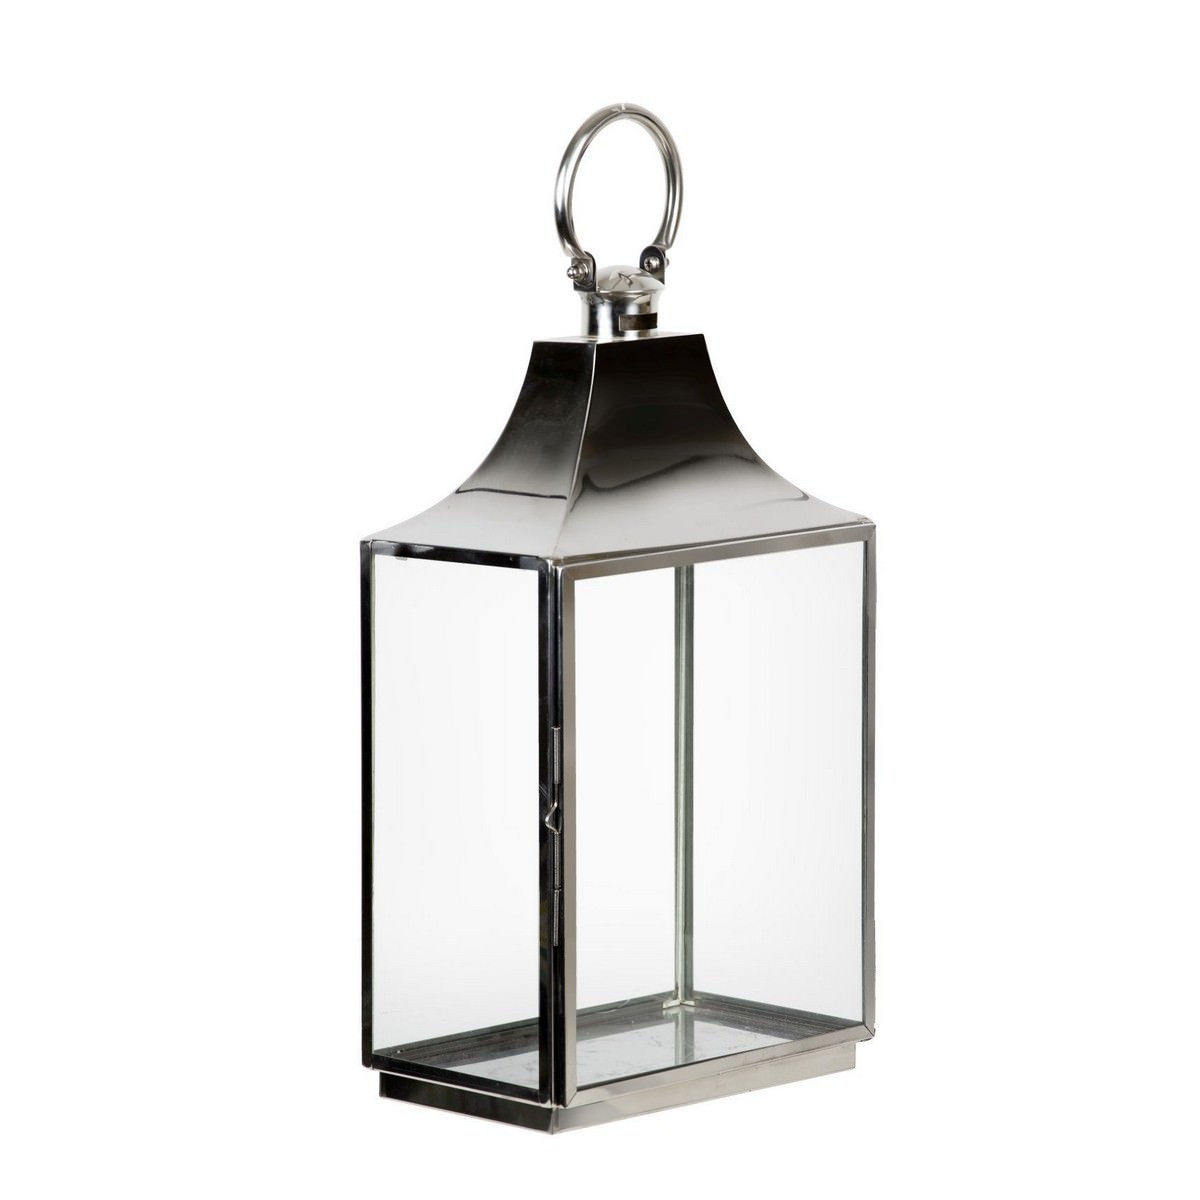 Aurielo Stainless Steel & Glass Lantern, Large